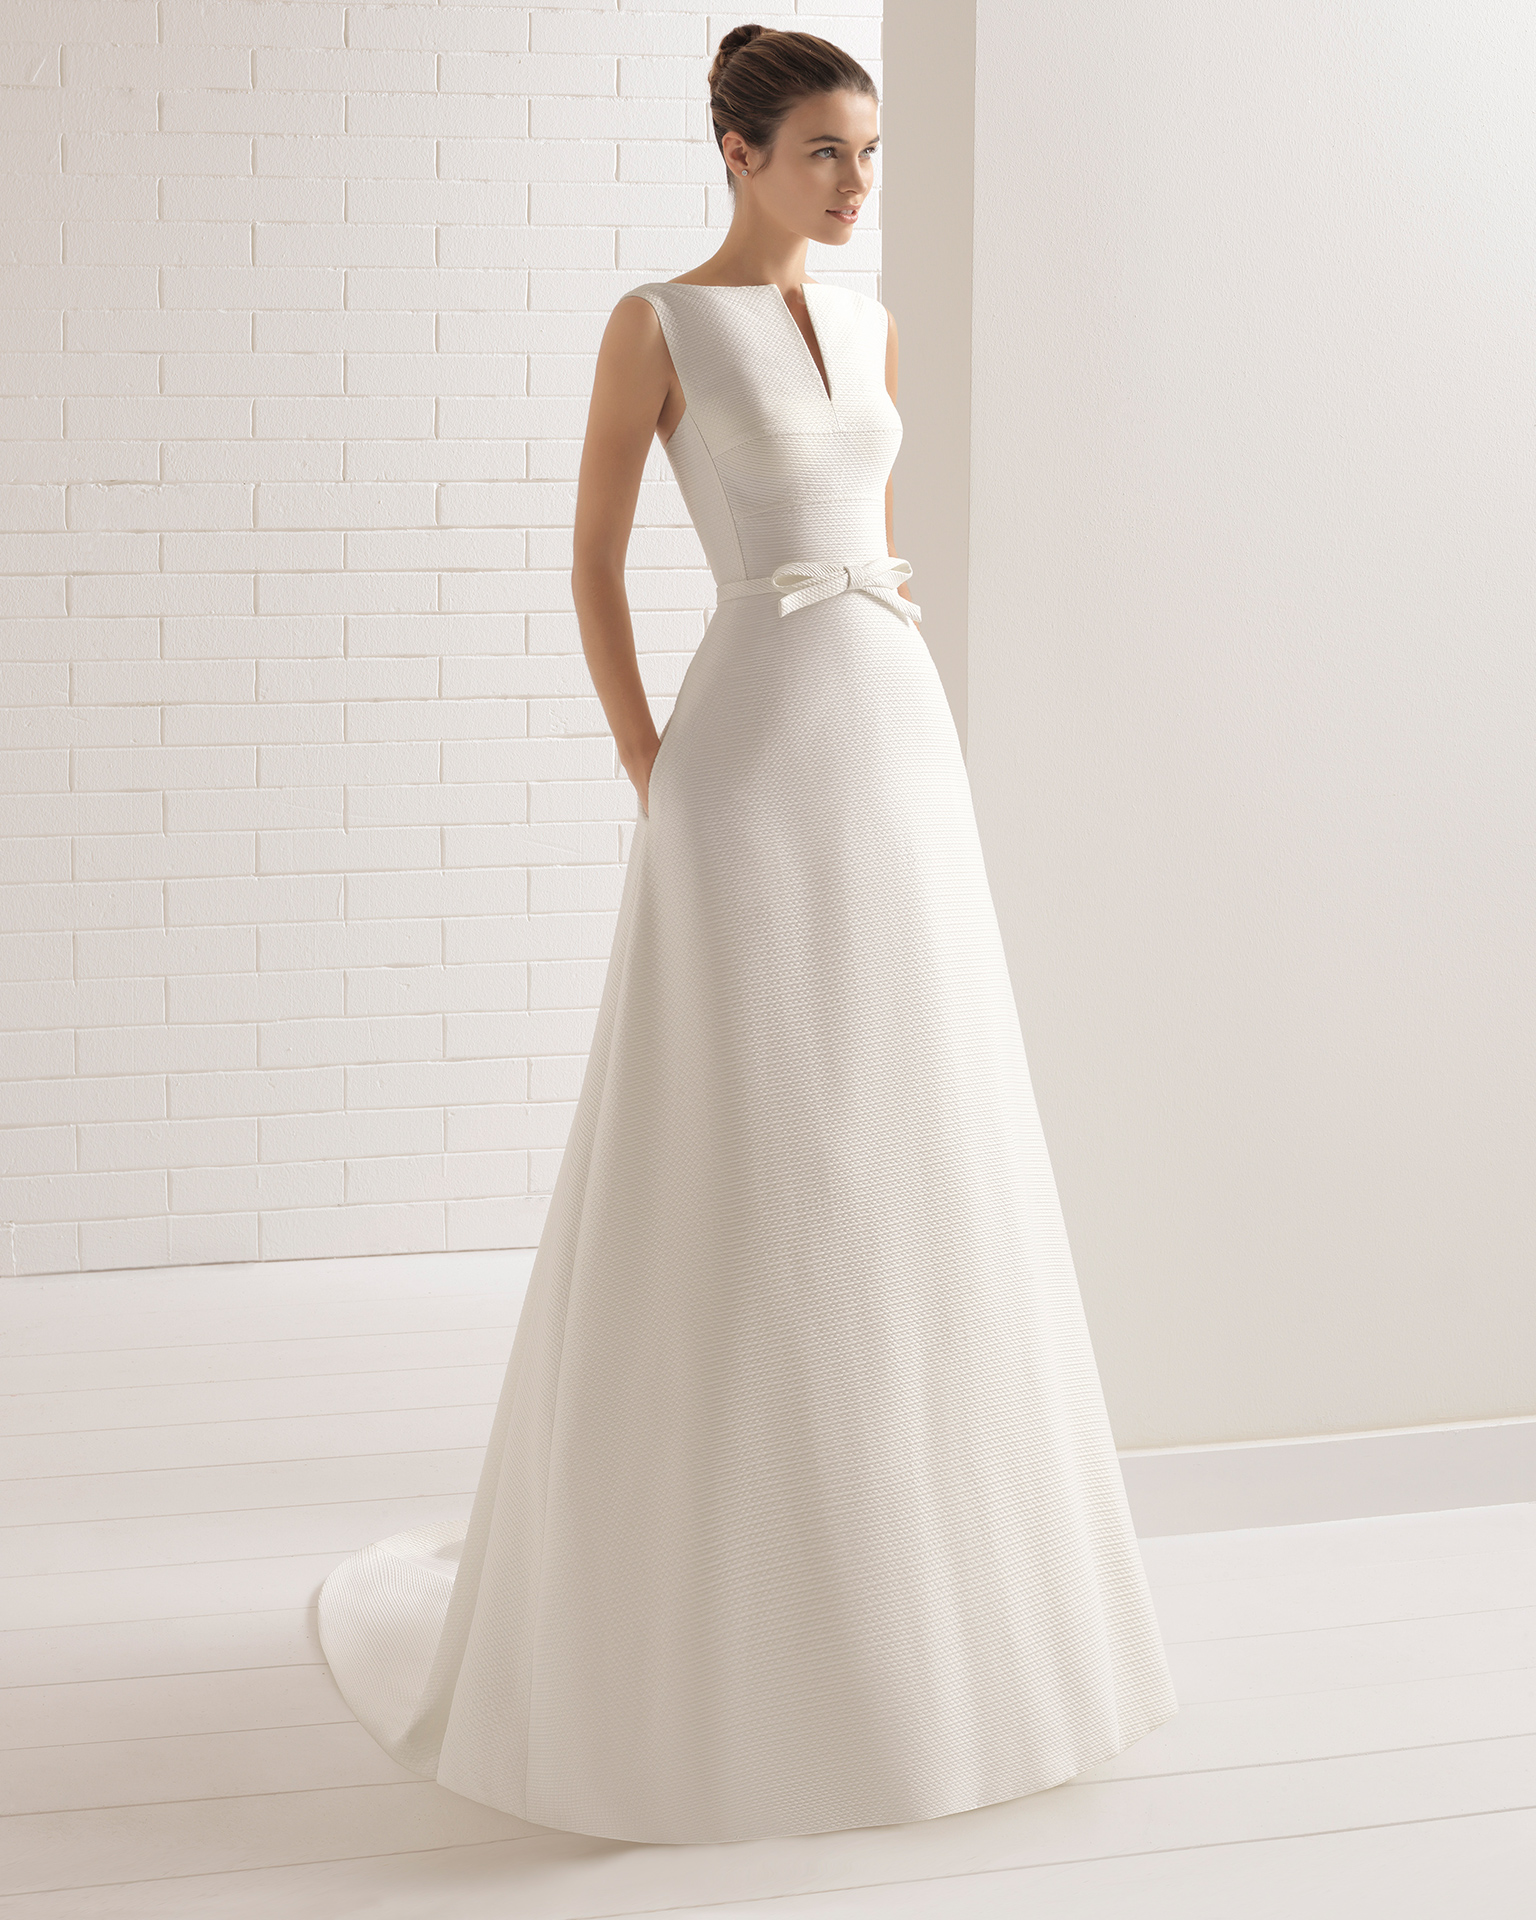 Classic-style capri wedding dress with bateau neckline, front opening and beadwork detail.